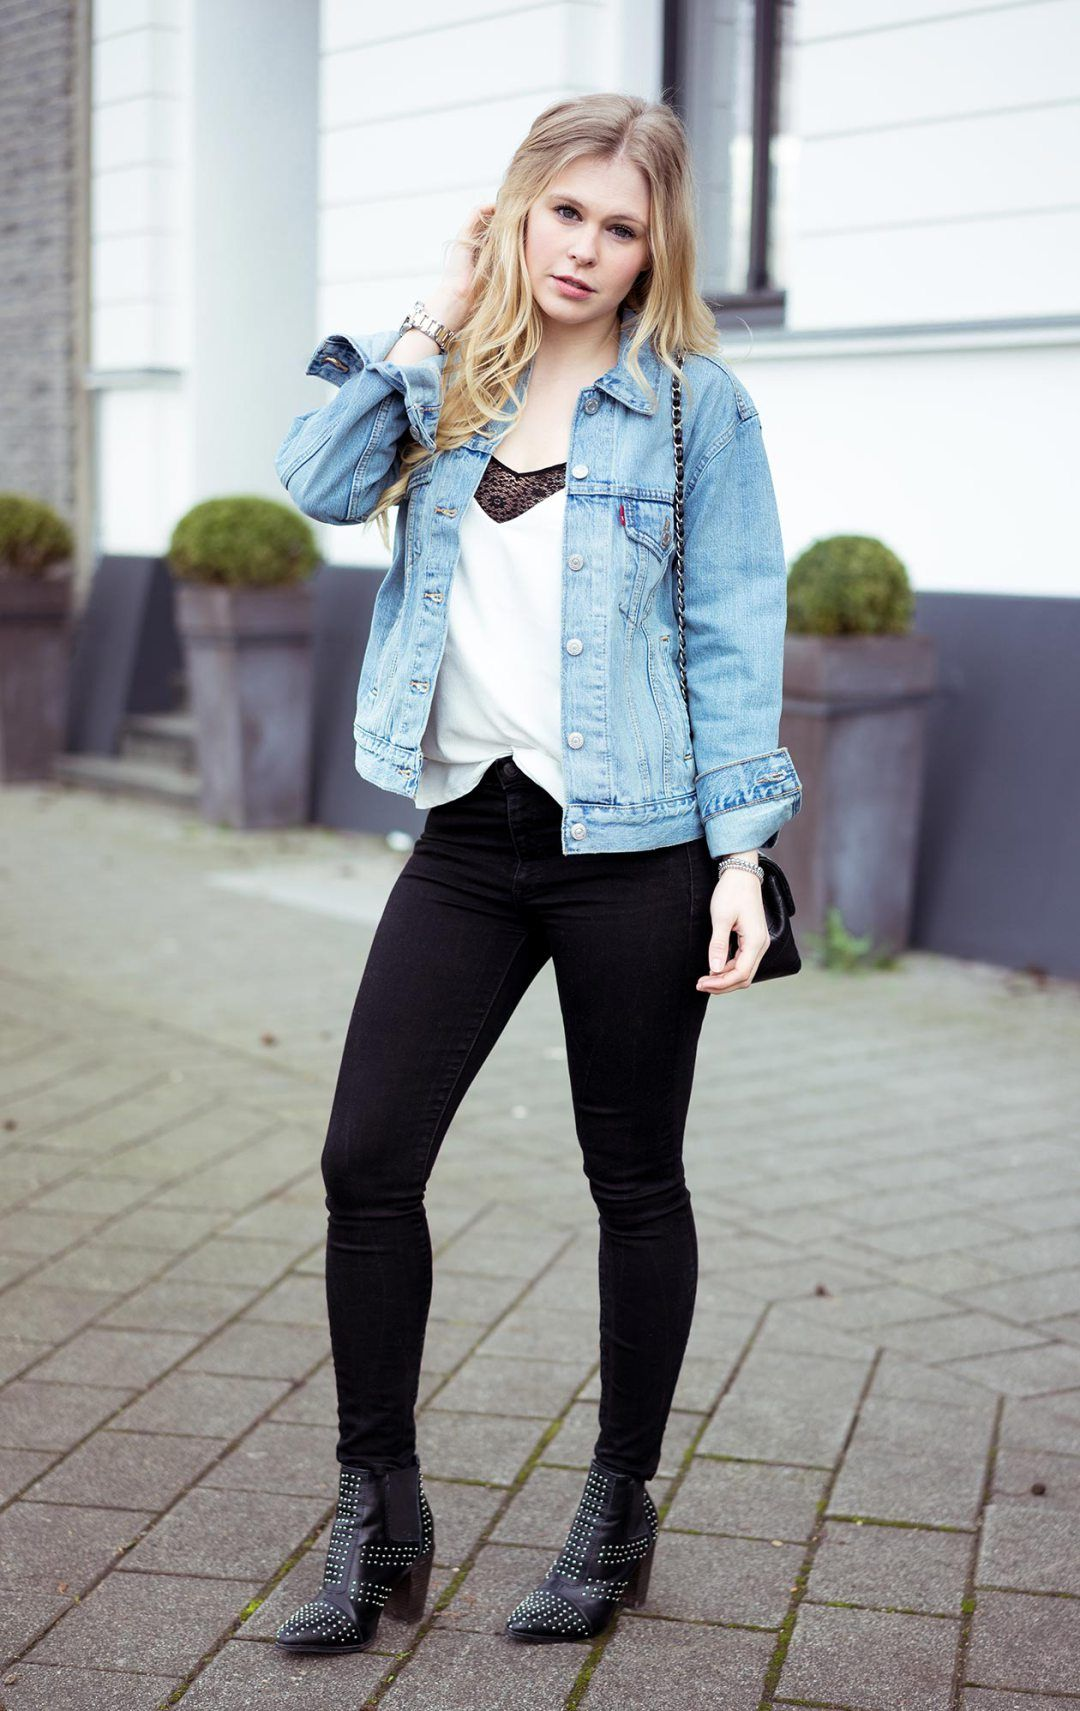 Oversize Jeansjacke Damen Oversize Jeansjacke By Levis Jean Outfits And Fashion